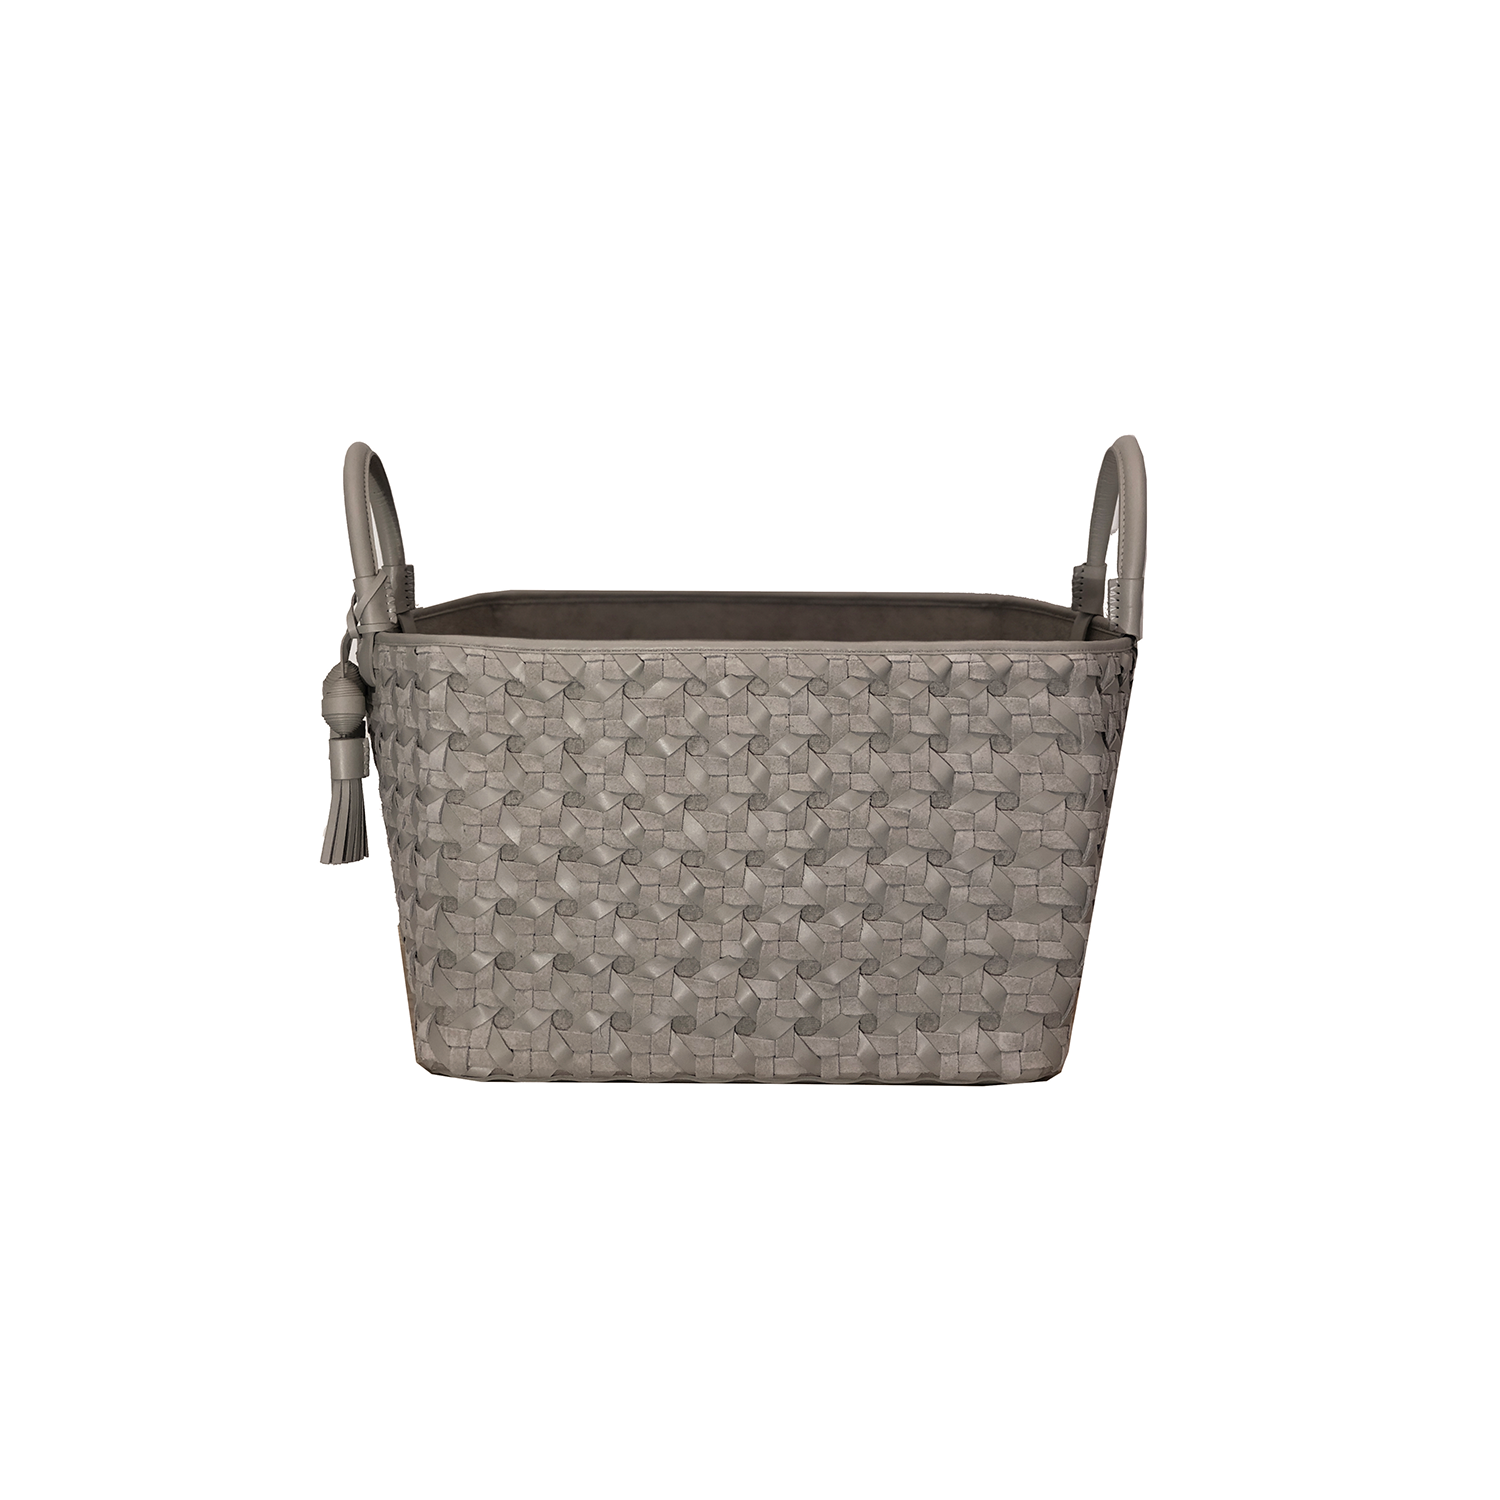 Trancoso Maxi Catavento Geometrico Woven Leather Basket - Trancoso Maxi Catavento Geometrico Woven Leather Basket is designed to complement an ambient with natural and sophisticated feeling, ideal when placed next your sofa or bed, perfect for magazines and throws storage. Elisa Atheniense woven leather pieces, are handmade and manufactured in Brazil using an exclusive treated leather that brings the soft feel and touch to every single piece. Elisa Atheniense Home Baskets have a delicate tassel attached.   The basket is available in two sizes. Bespoke sizes are also available under project request as well as colours, see colour chart for reference. | Matter of Stuff